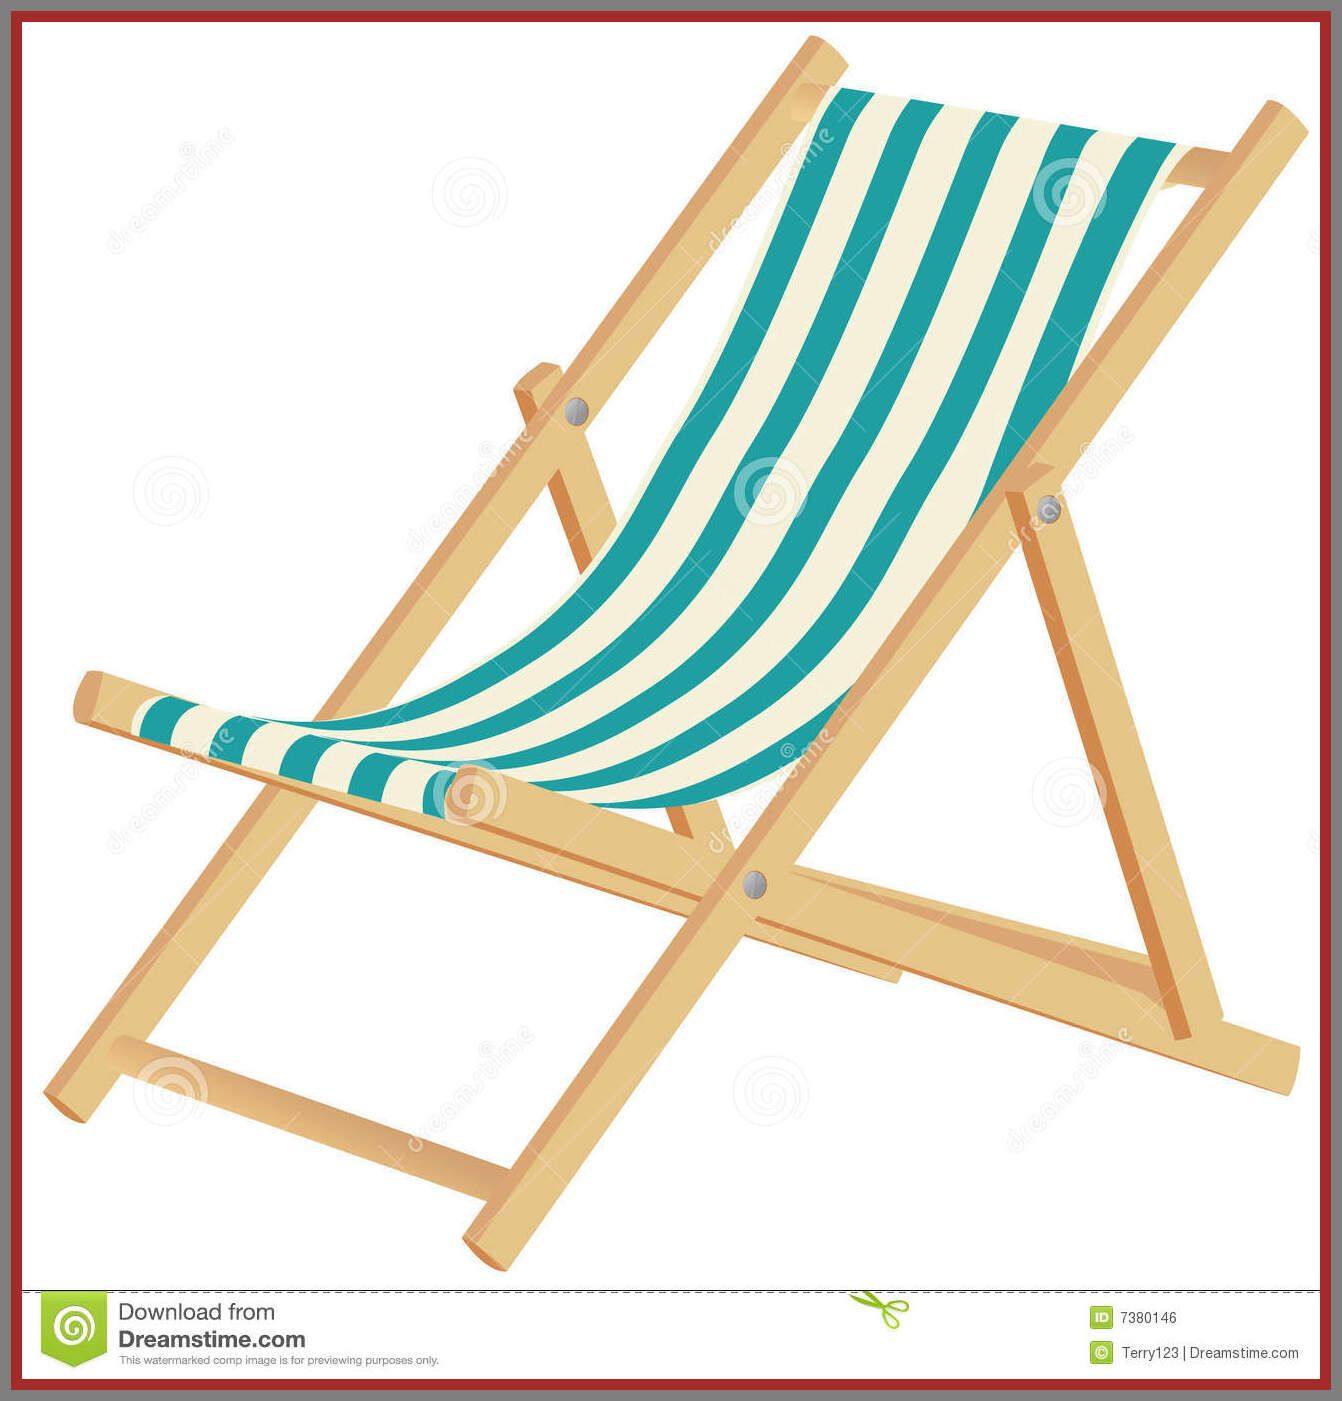 76 Reference Of Beach Deck Chair Vector In 2020 Deck Chairs Backpack Beach Chair Outdoor Dining Chairs